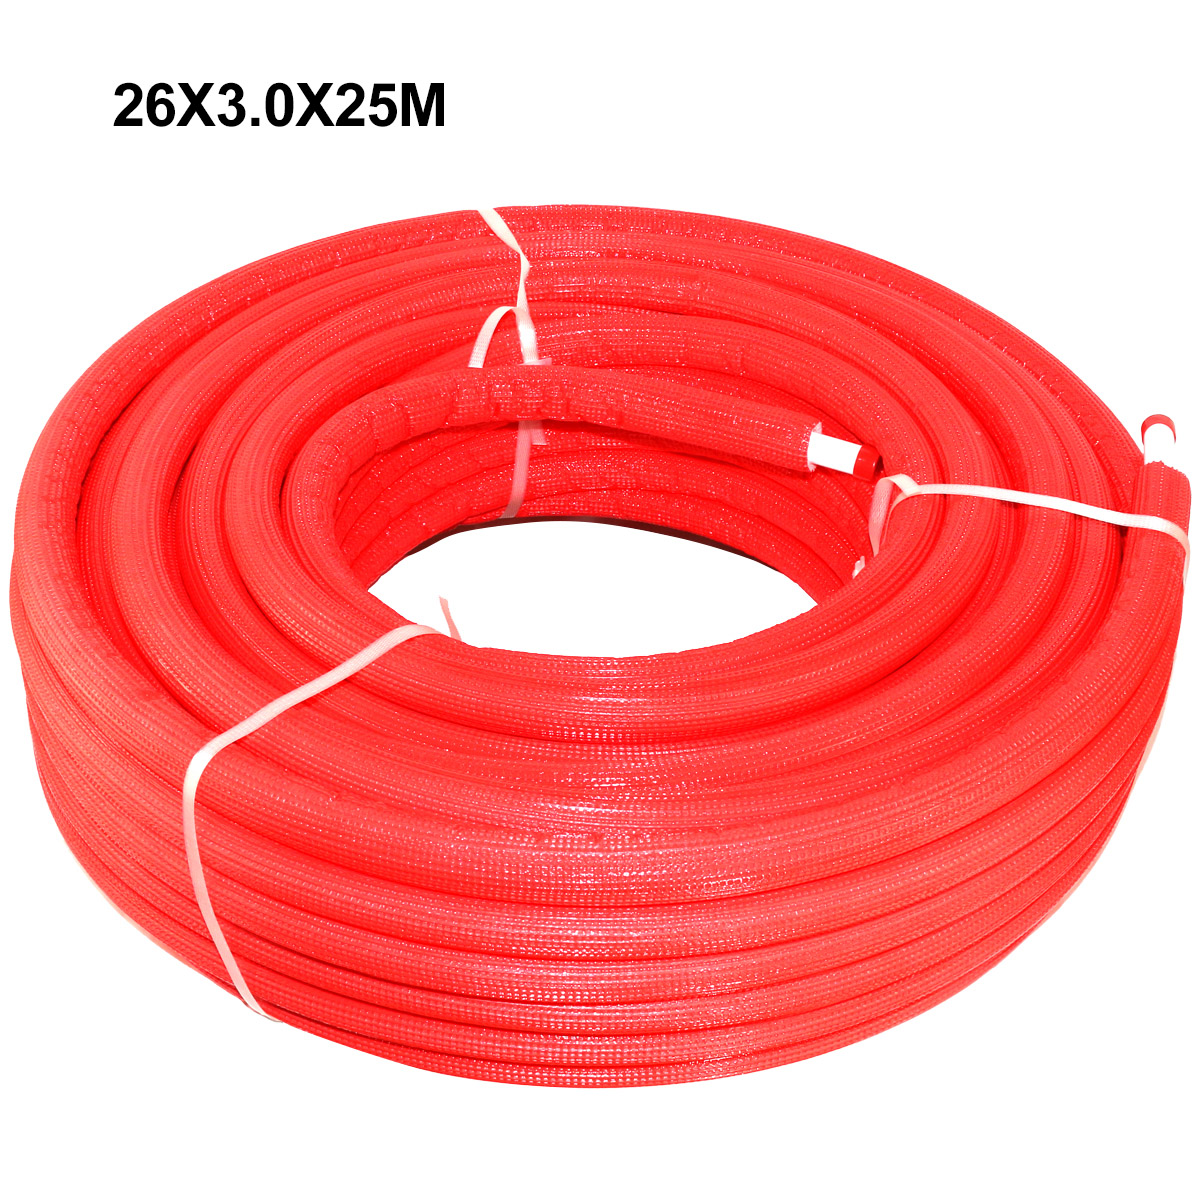 PEX-AL-PEX Multilayer Insulated Pipe Insulation Red 26 x 3.0 × 25 m